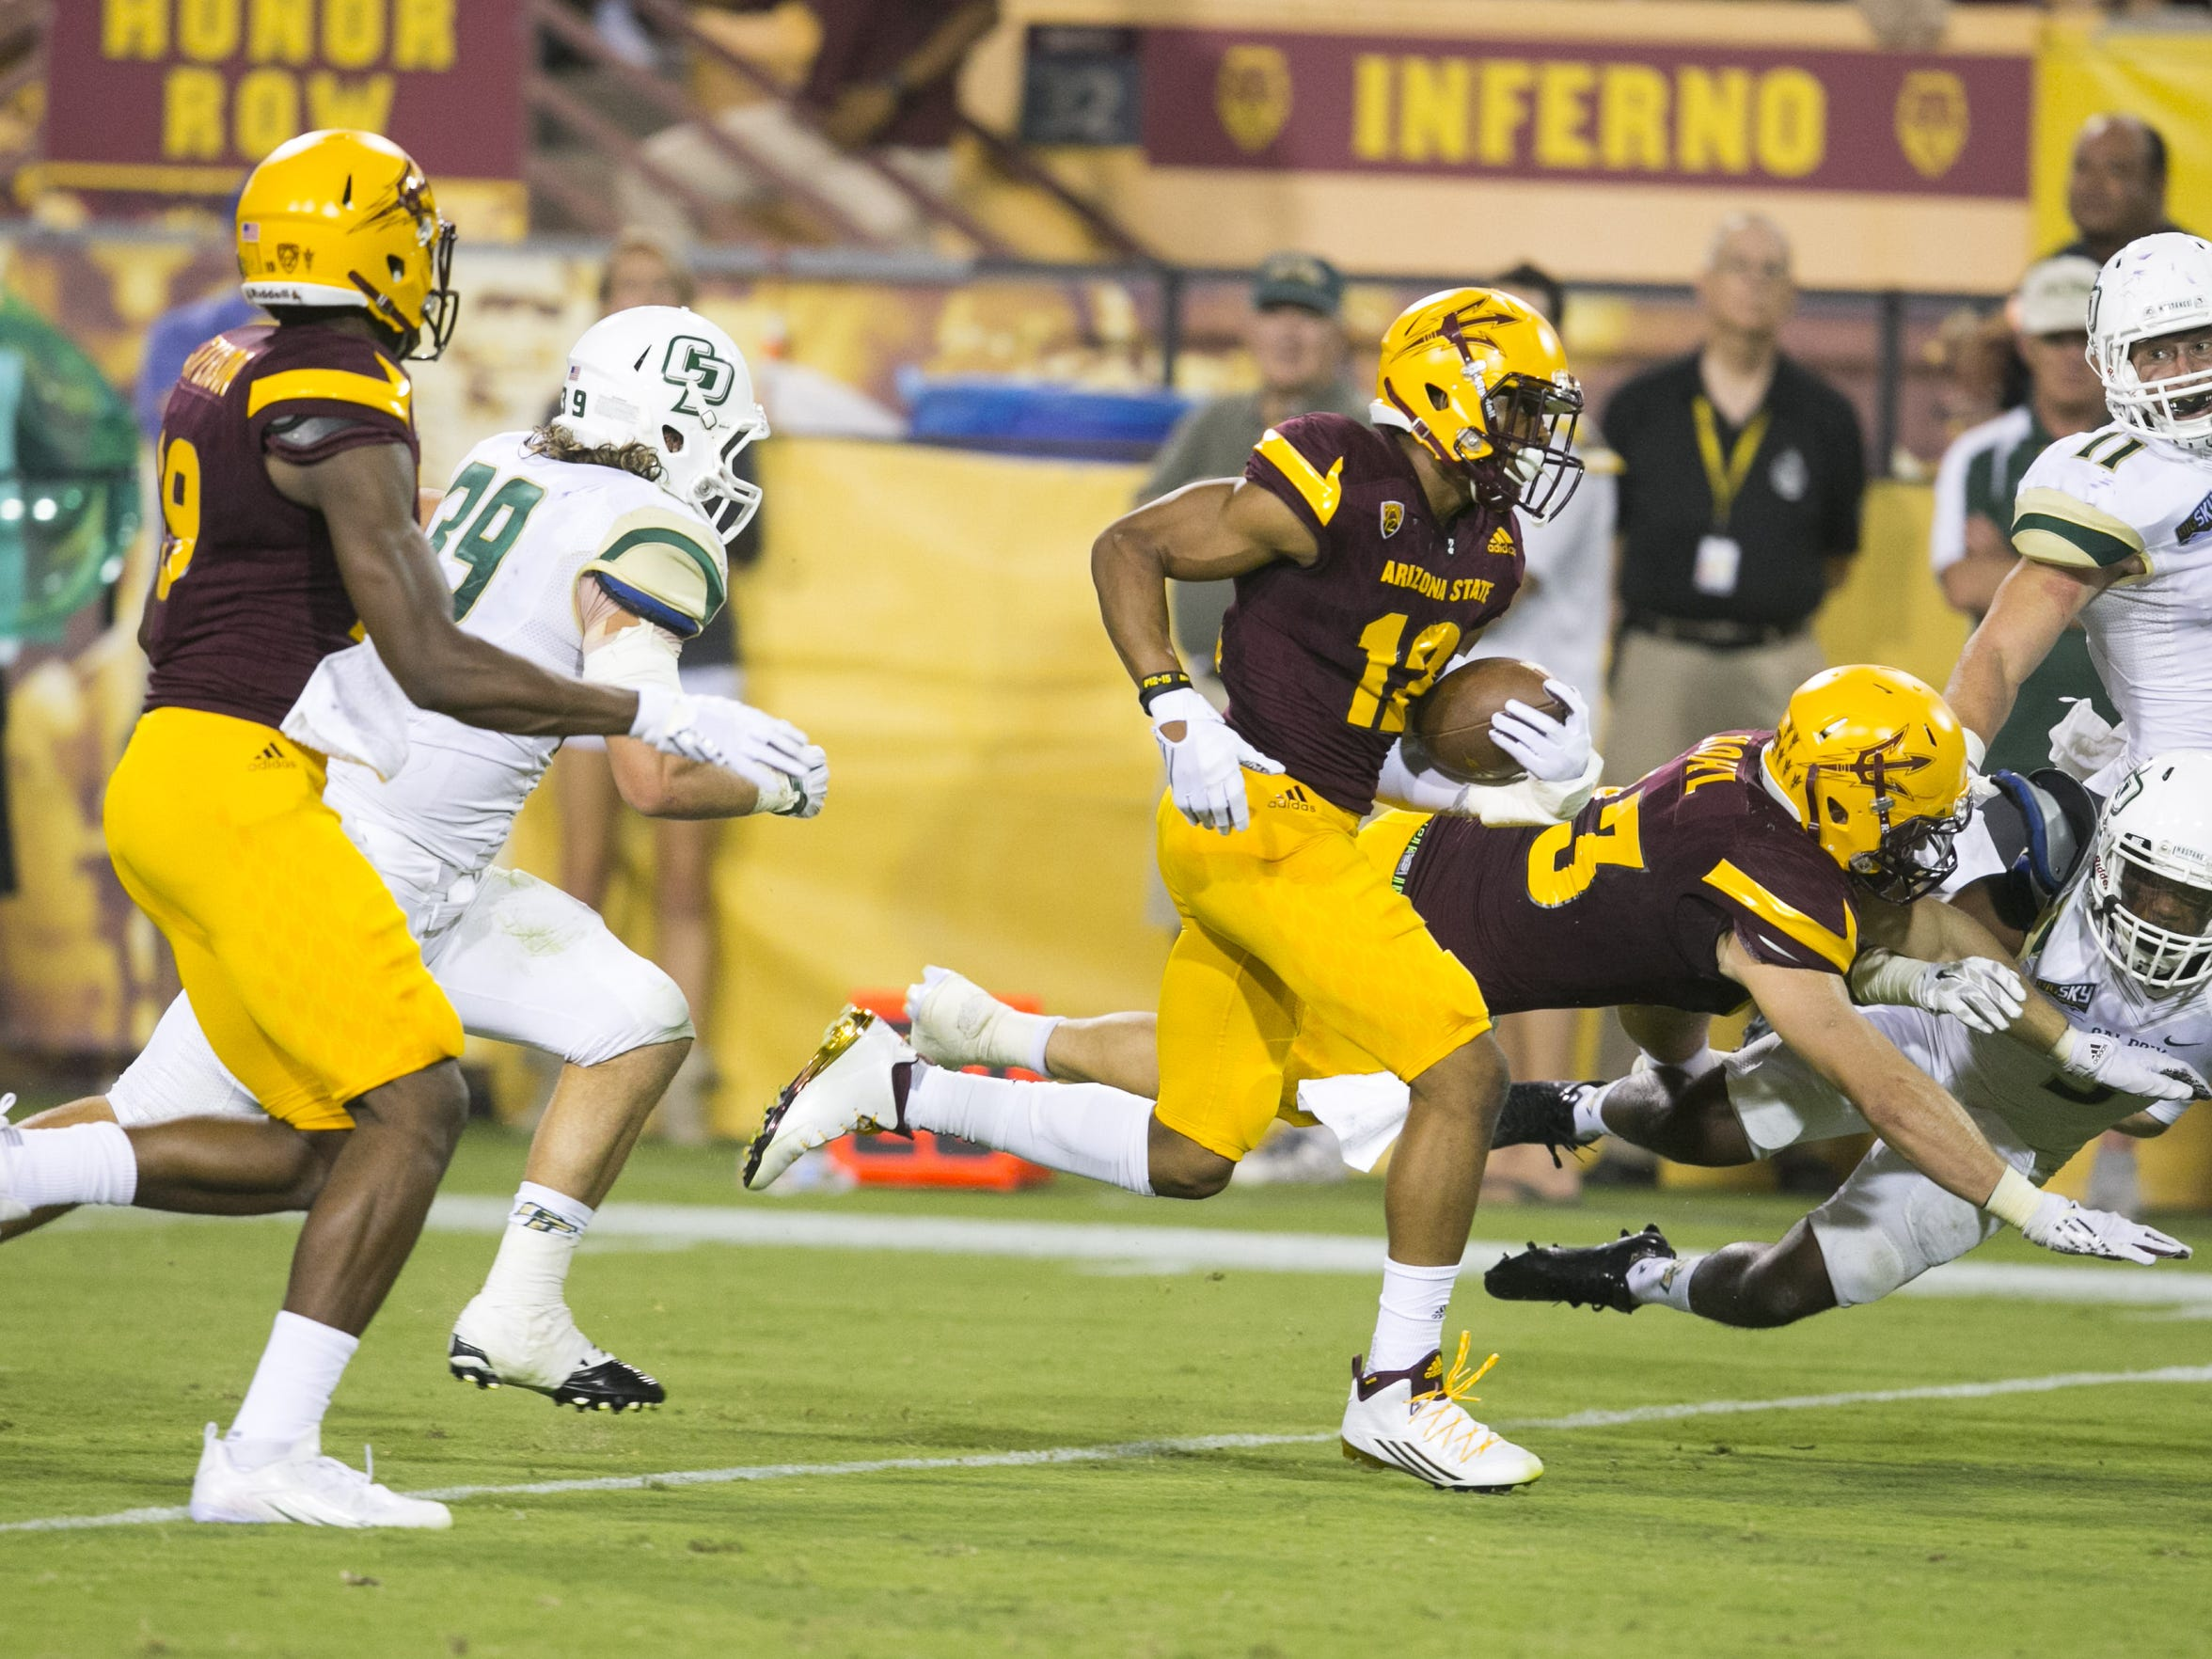 ASU receiver Tim White carries the ball against Cal Poly during the fourth quarter of the college football game at Sun Devil Stadium in Tempe on Saturday, September 12, 2015.